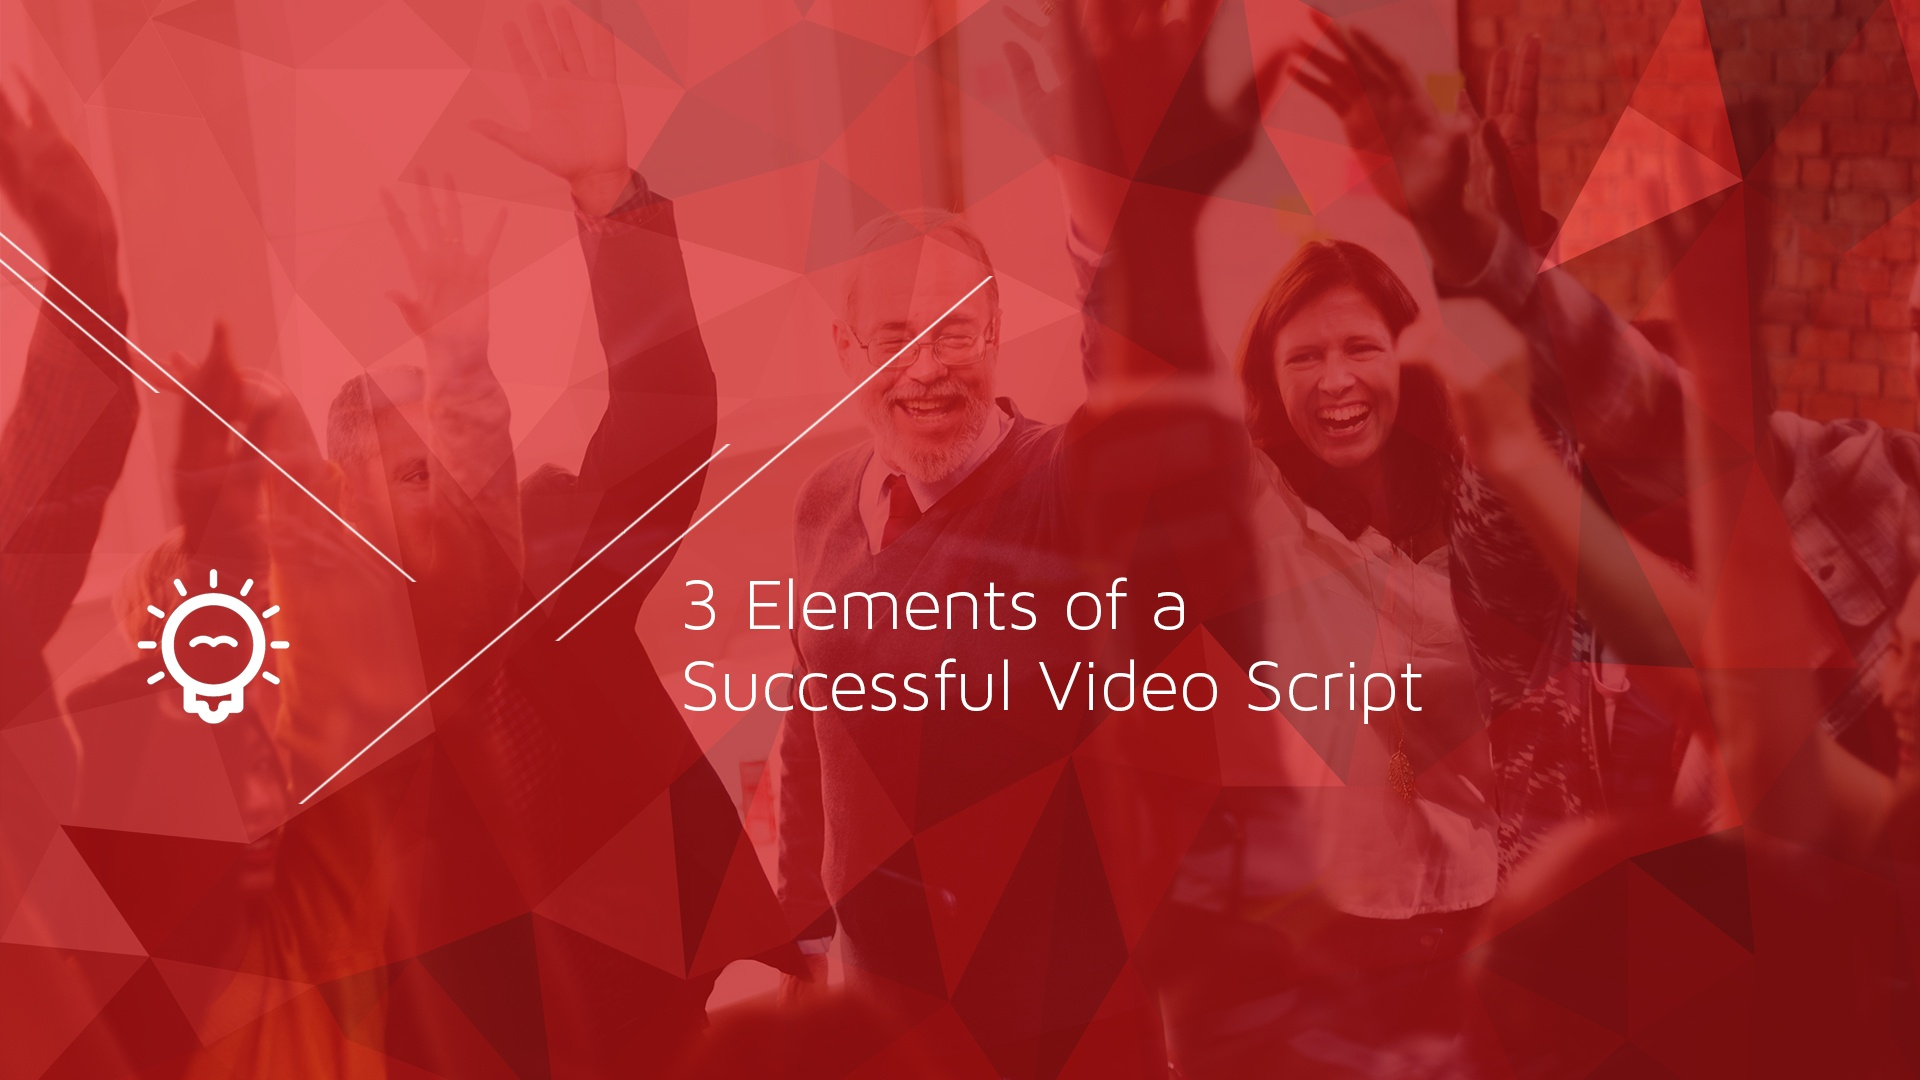 3 Elements of a Successful Video Script